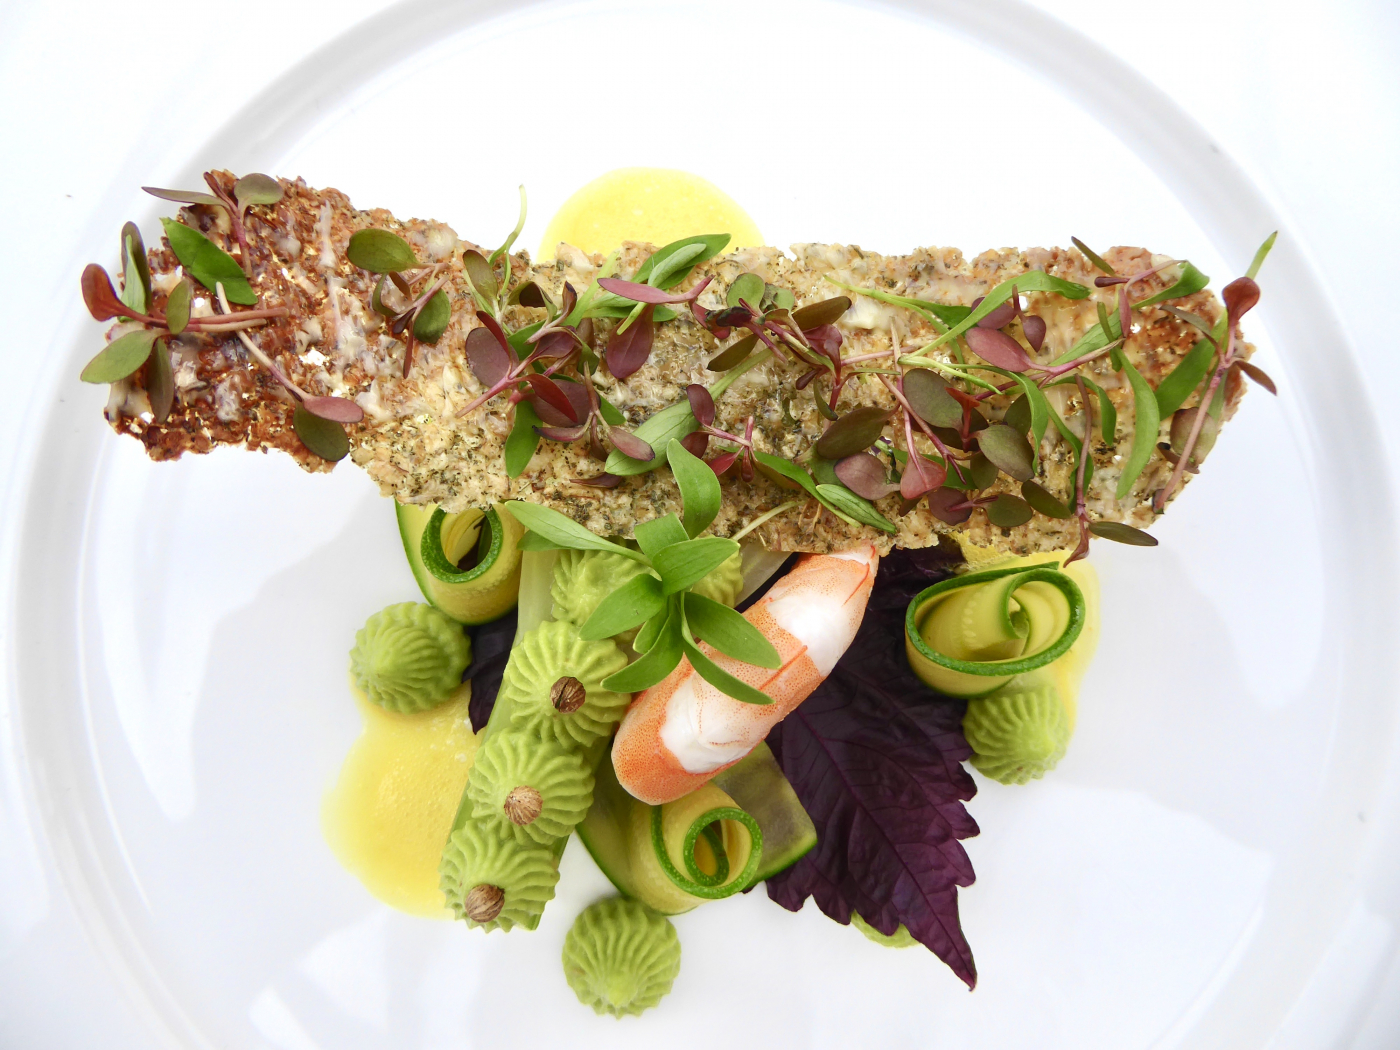 Prawn, Avocado and fennel with Oat cracker, Adji Cress, Ghoa Cress, Shiso purple. - 1